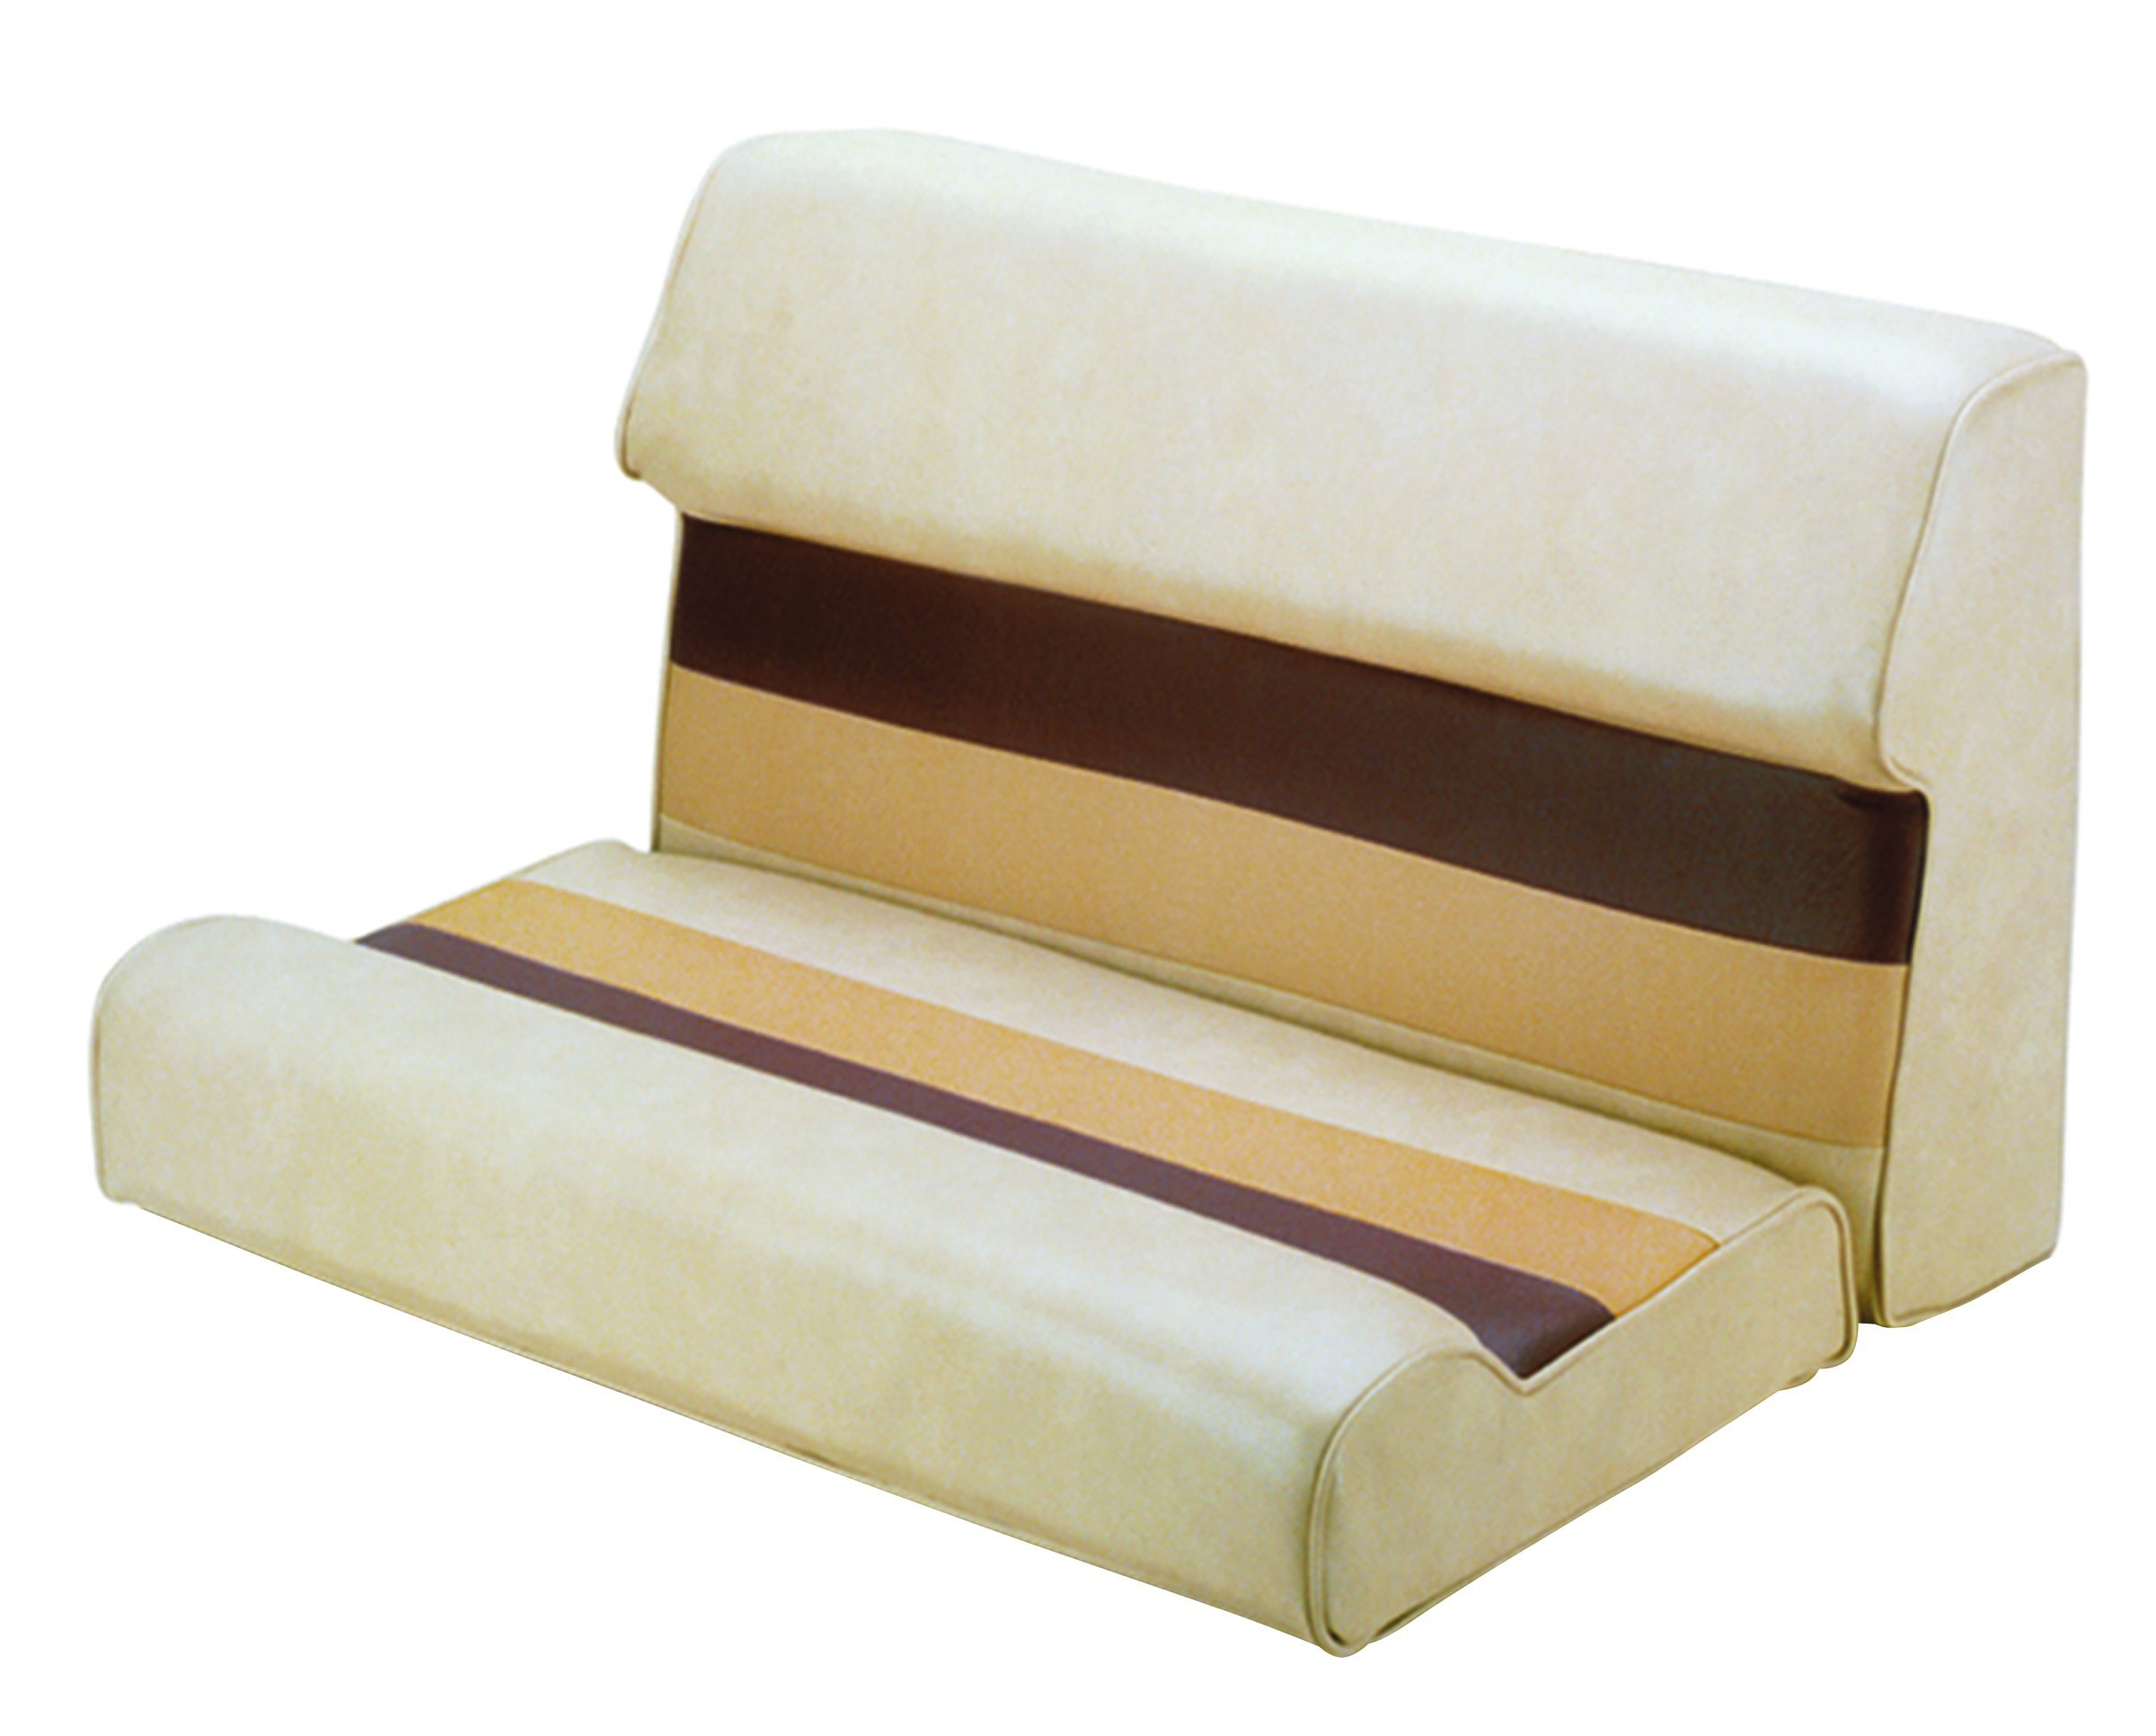 Wise 28-Inch Cushion Only Pontoon Bench Seat, Sand/Chestnut/Gold